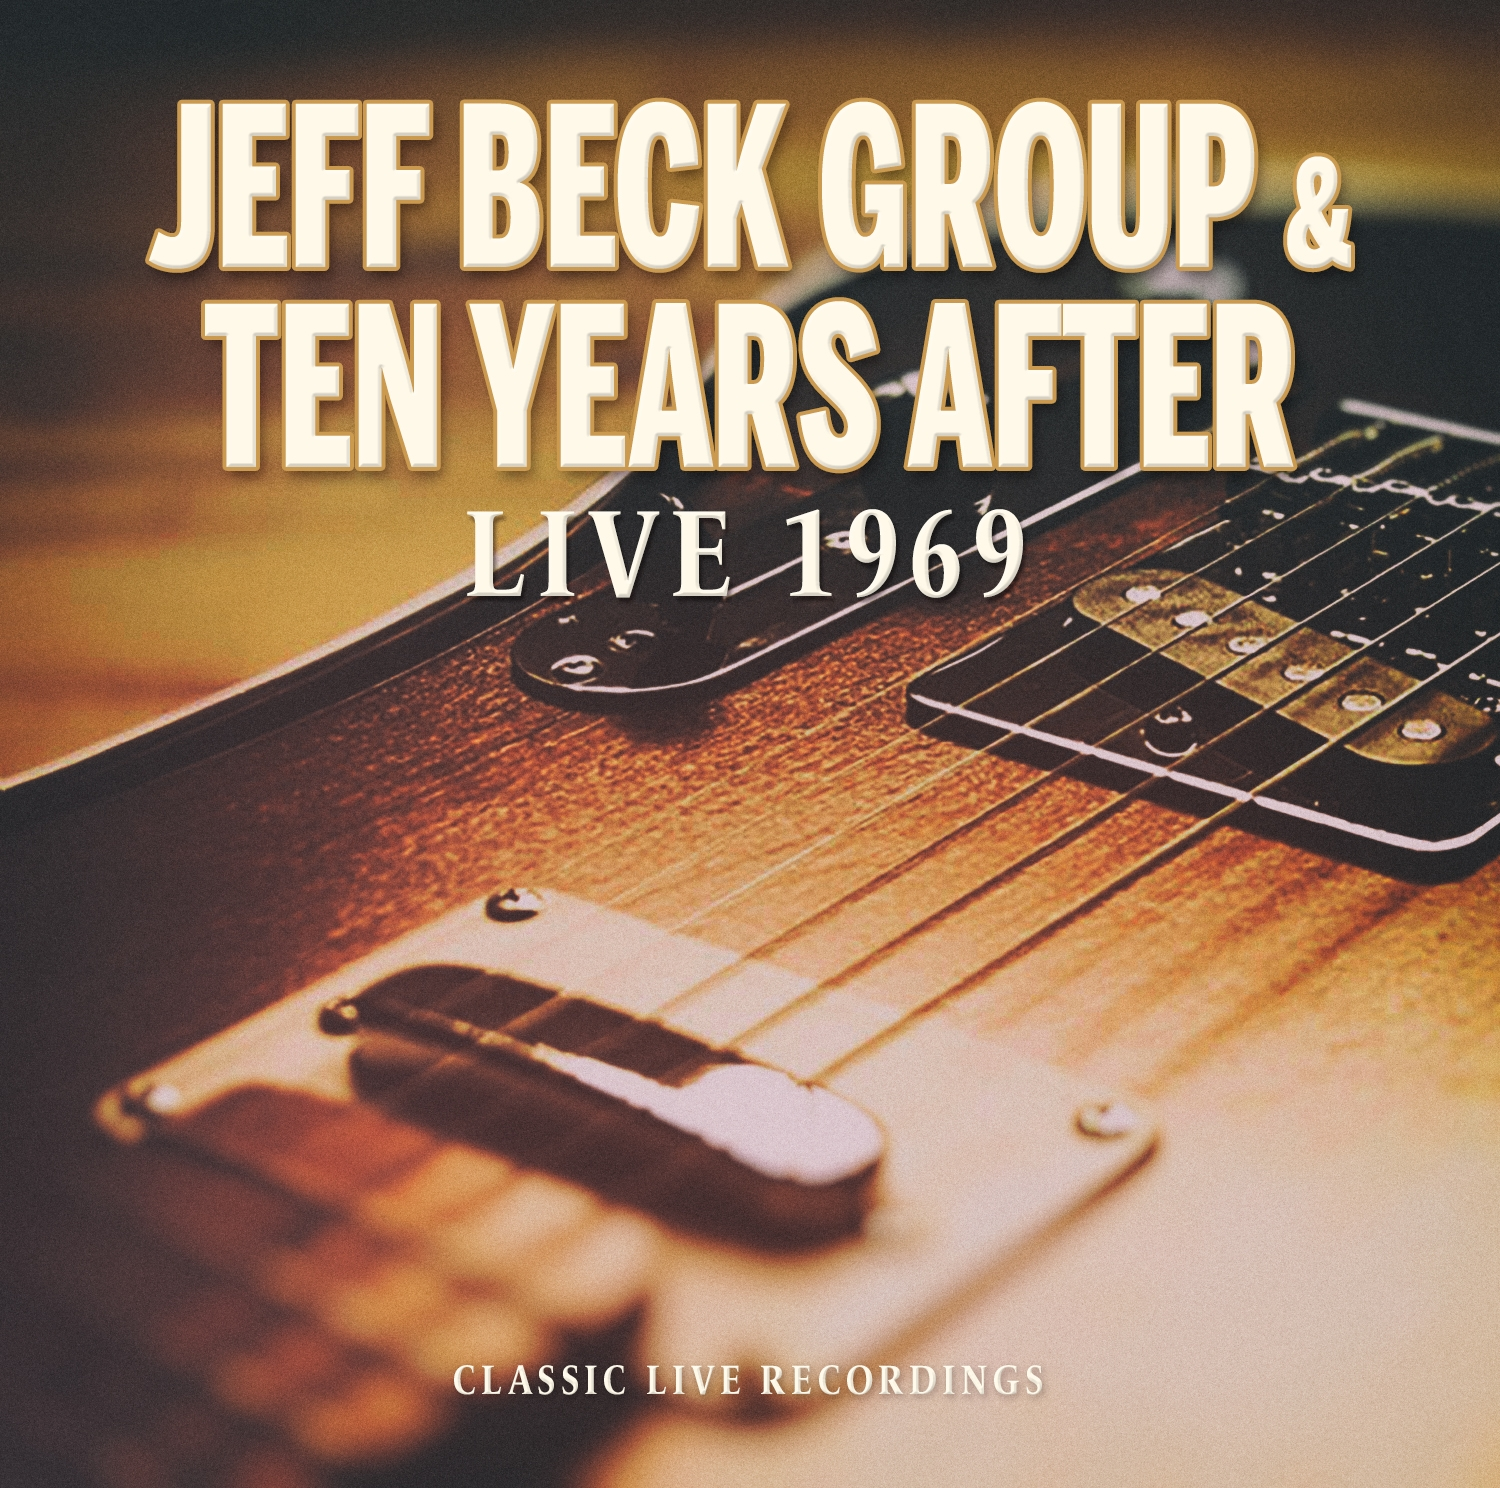 Jeff Beck Group & Ten Years After - Live 1969